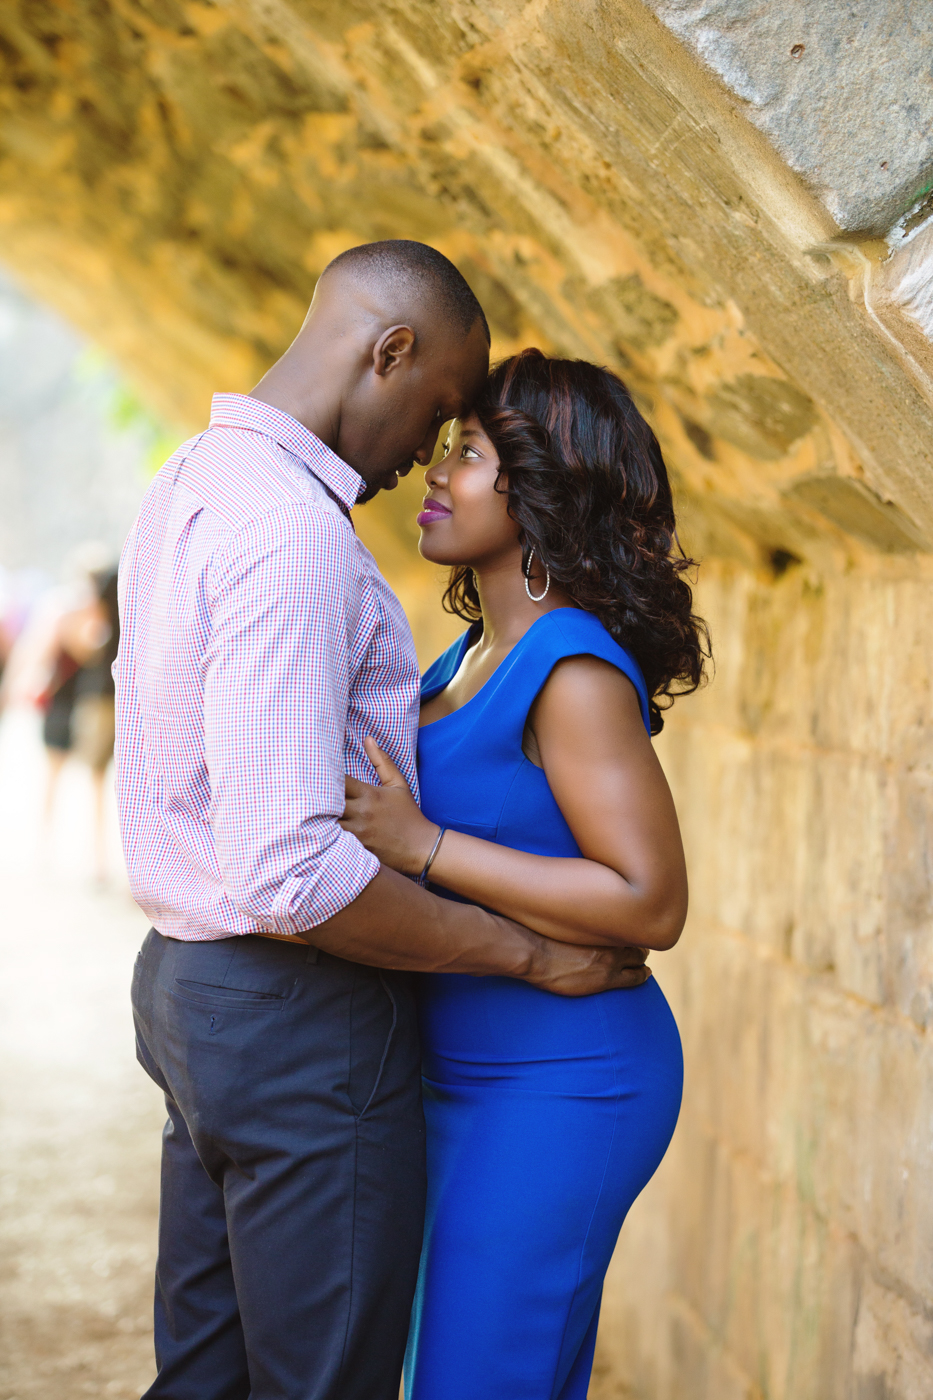 Jessica-Daniel-Engagement-Photo-Shoot-in-the-heart-of-Washington-DC-Ksenia-Pro-Photography-8